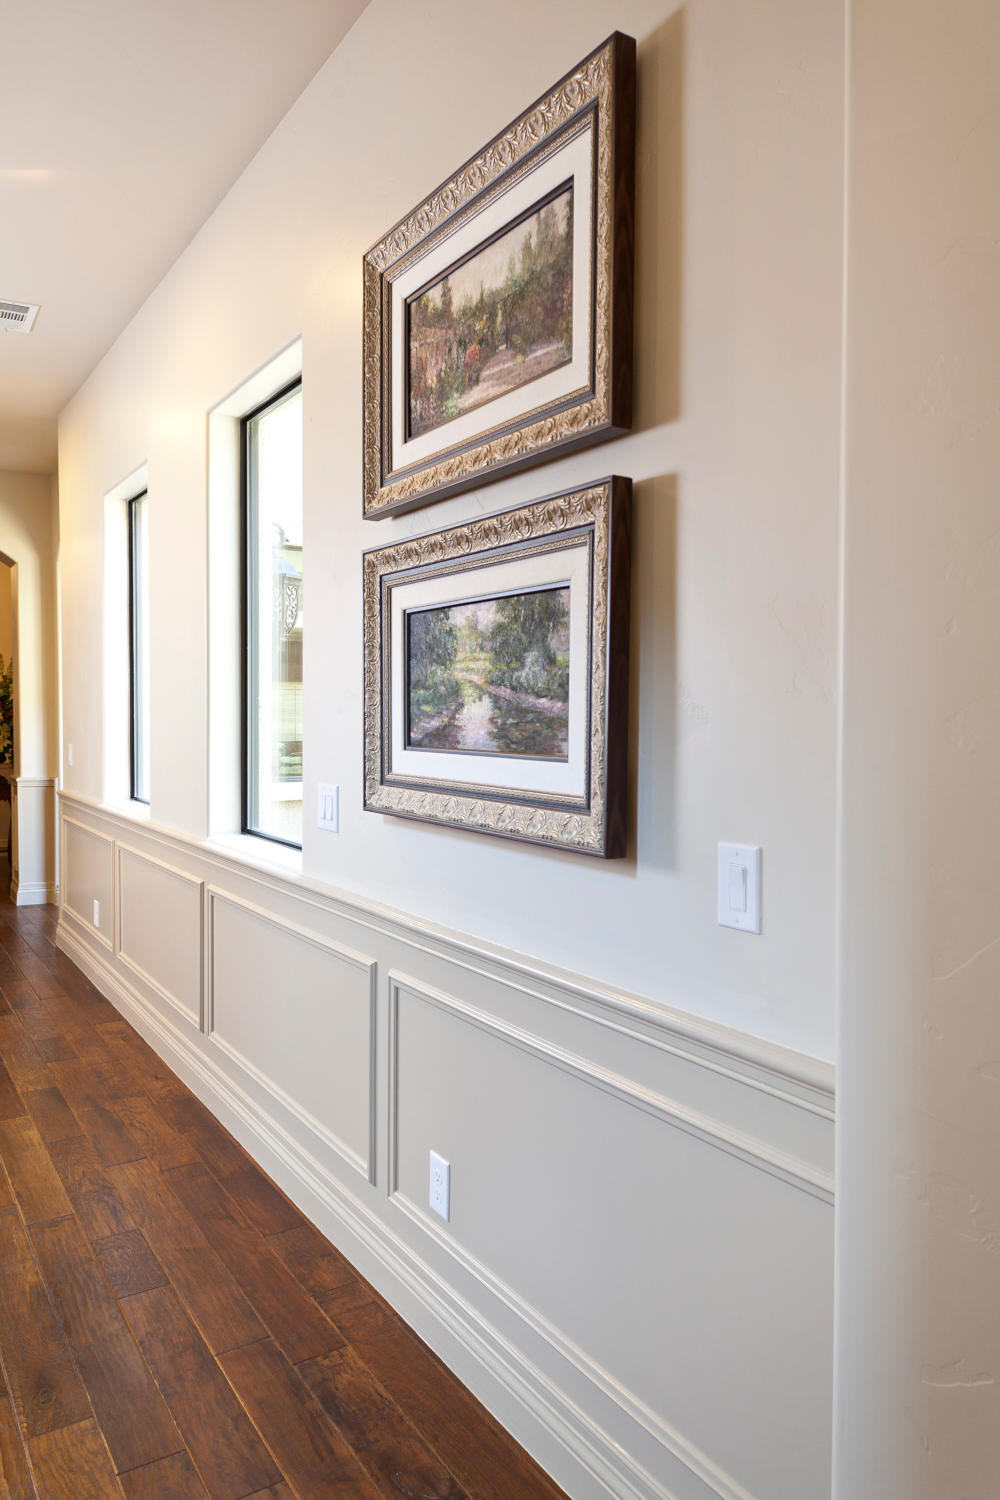 Home entry hallway with cream Wainscoting, wood flooring with landscape oil paintings on walls.